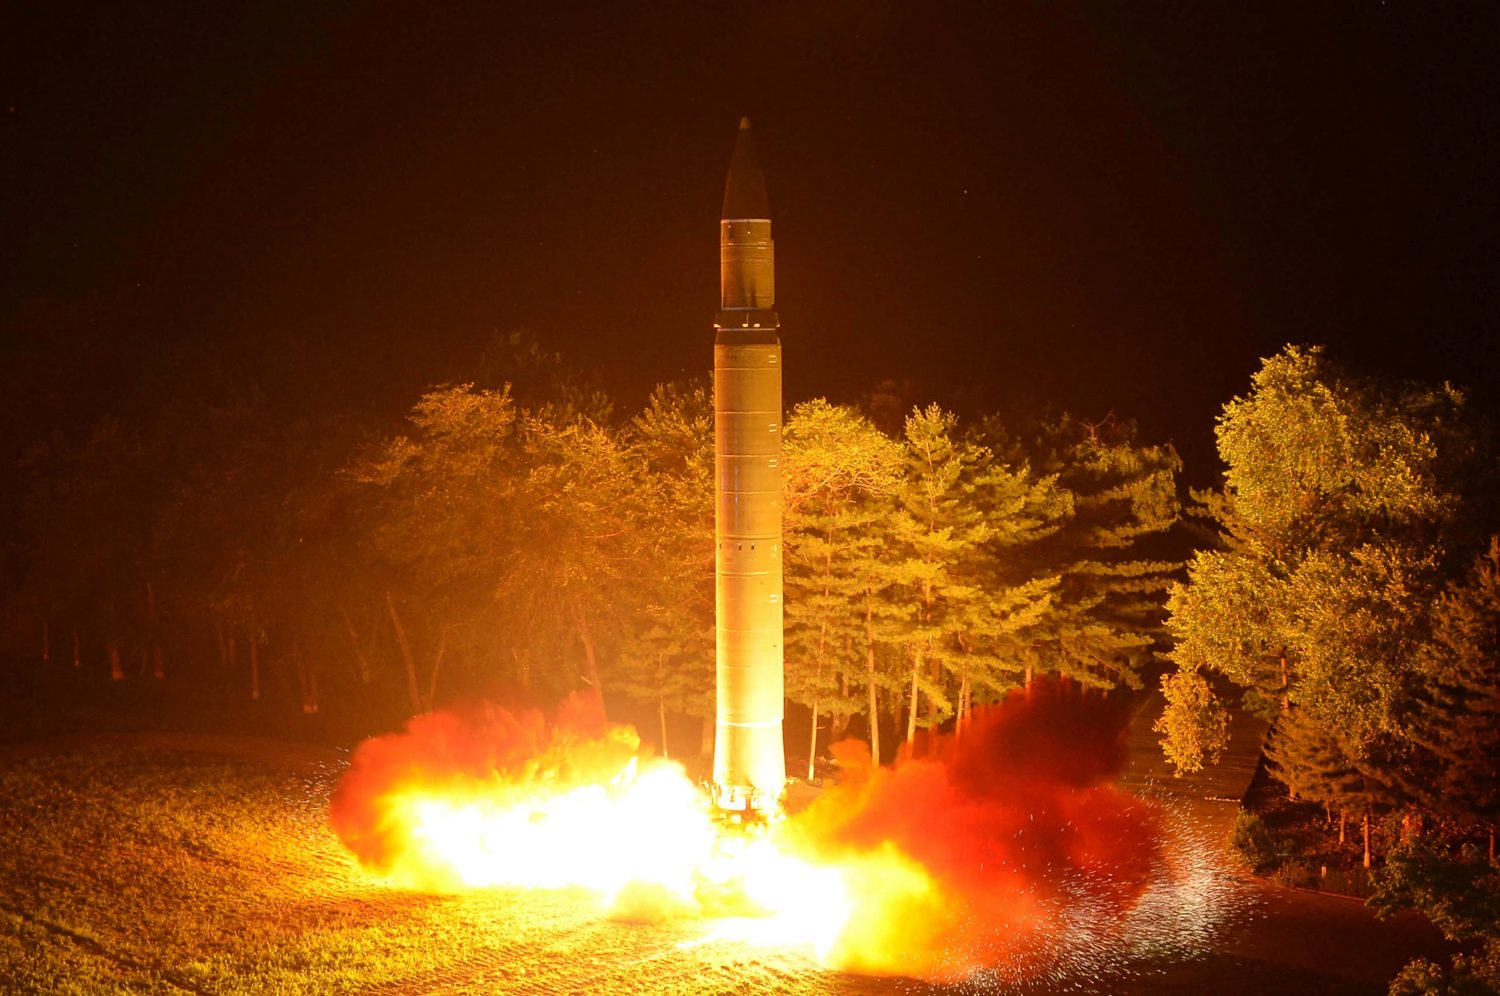 FILE PHOTO: Intercontinental ballistic missile (ICBM) Hwasong-14 is pictured during its second test-fire in this undated picture provided by KCNA in Pyongyang on July 29, 2017. KCNA via Reuters